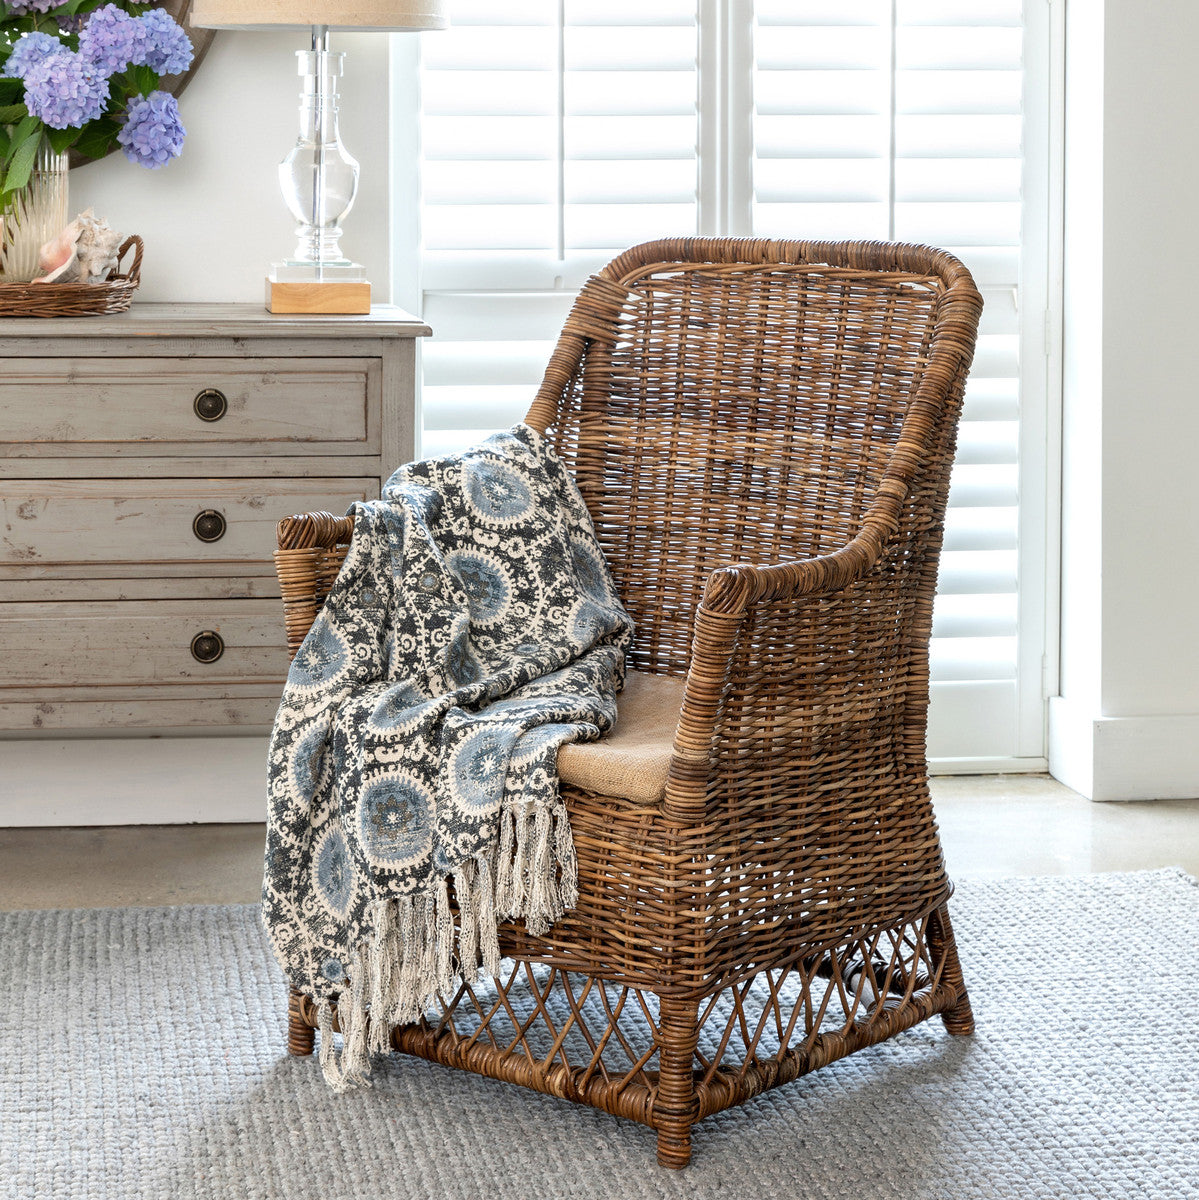 Lovecup Rattan Terrace Chair With Burlap Cushion L146 Lovecup